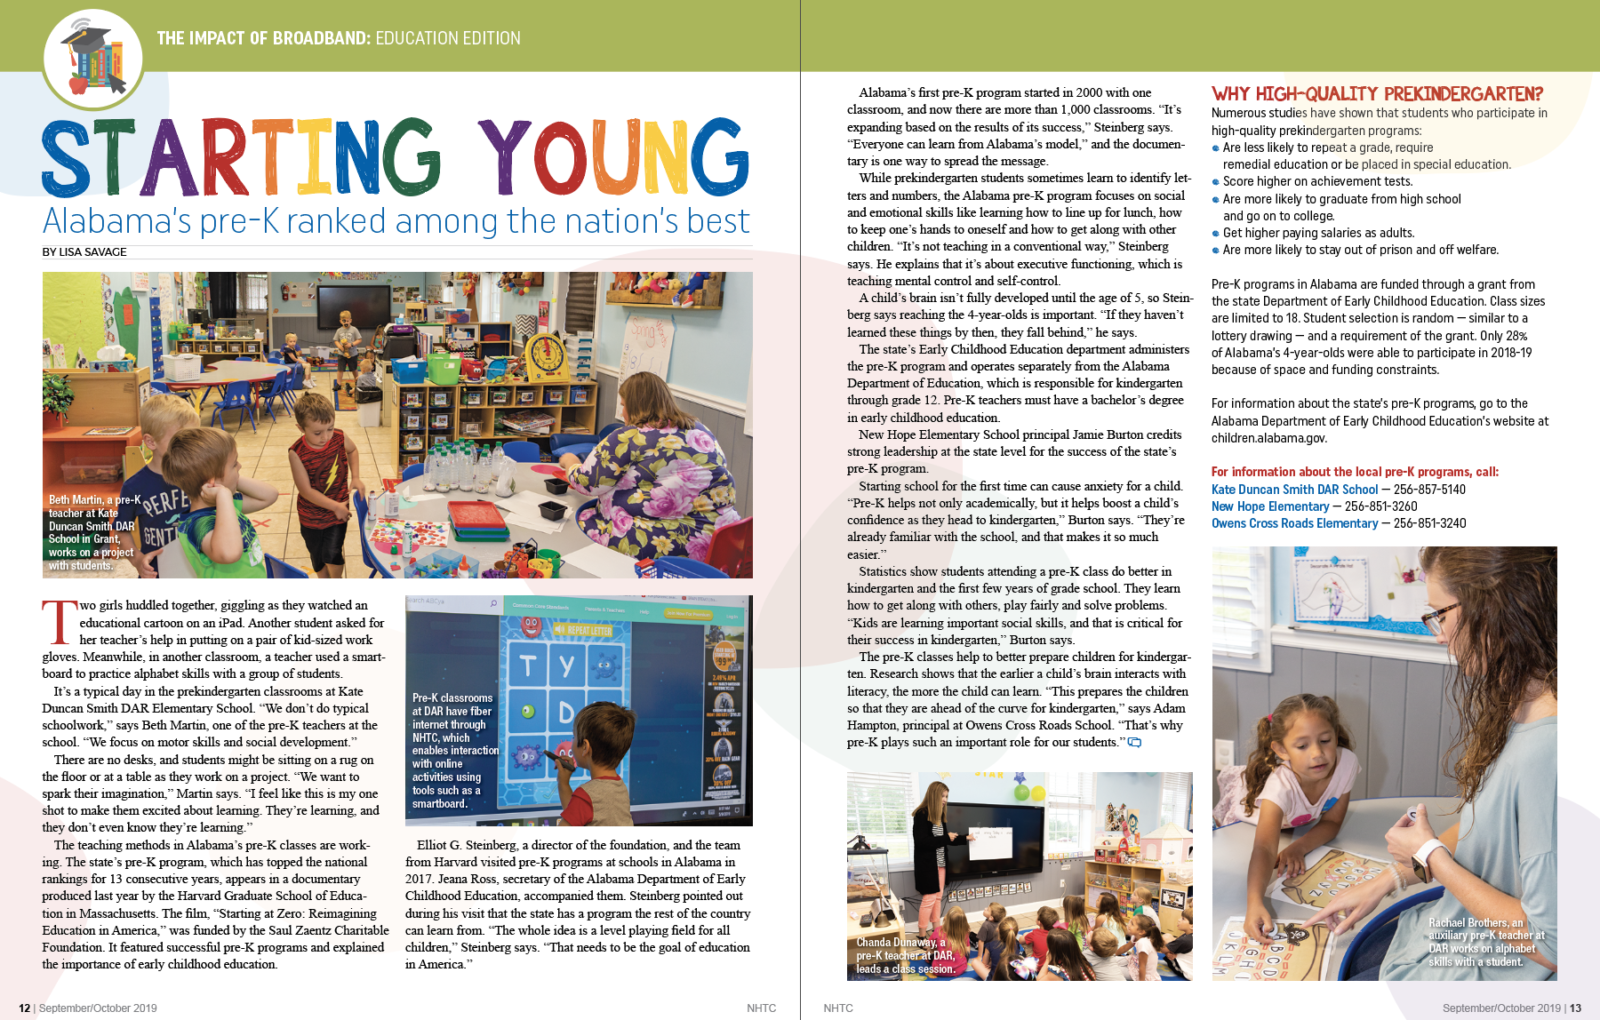 Starting Young magazine article